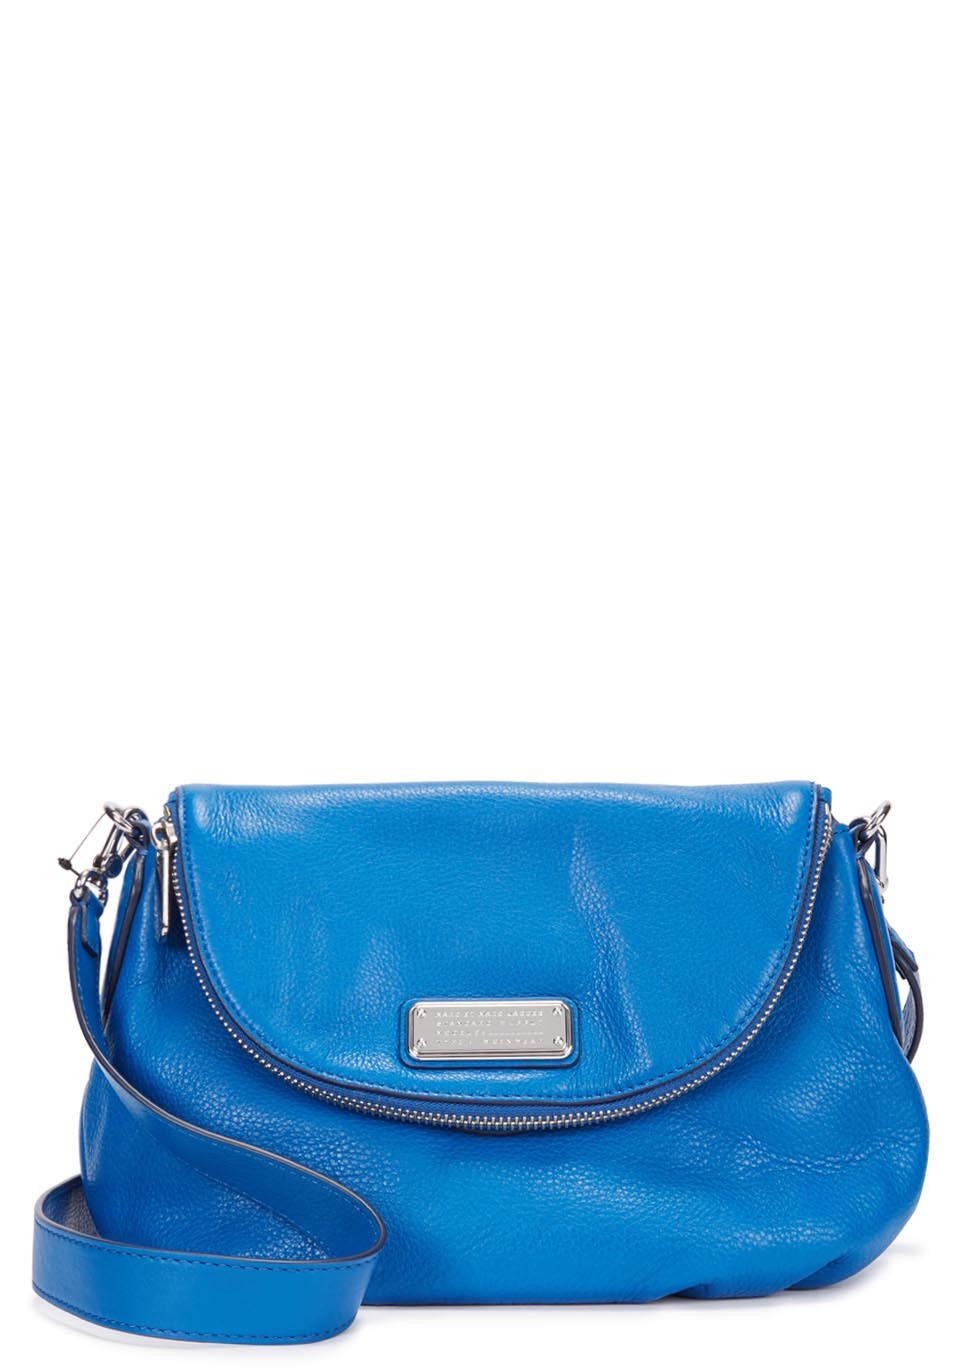 New Q Natasha Blue Leather Shoulder Bag - predominant colour: diva blue; occasions: casual, creative work; type of pattern: standard; style: saddle; length: across body/long; size: small; material: fabric; pattern: plain; finish: plain; season: s/s 2015; wardrobe: highlight